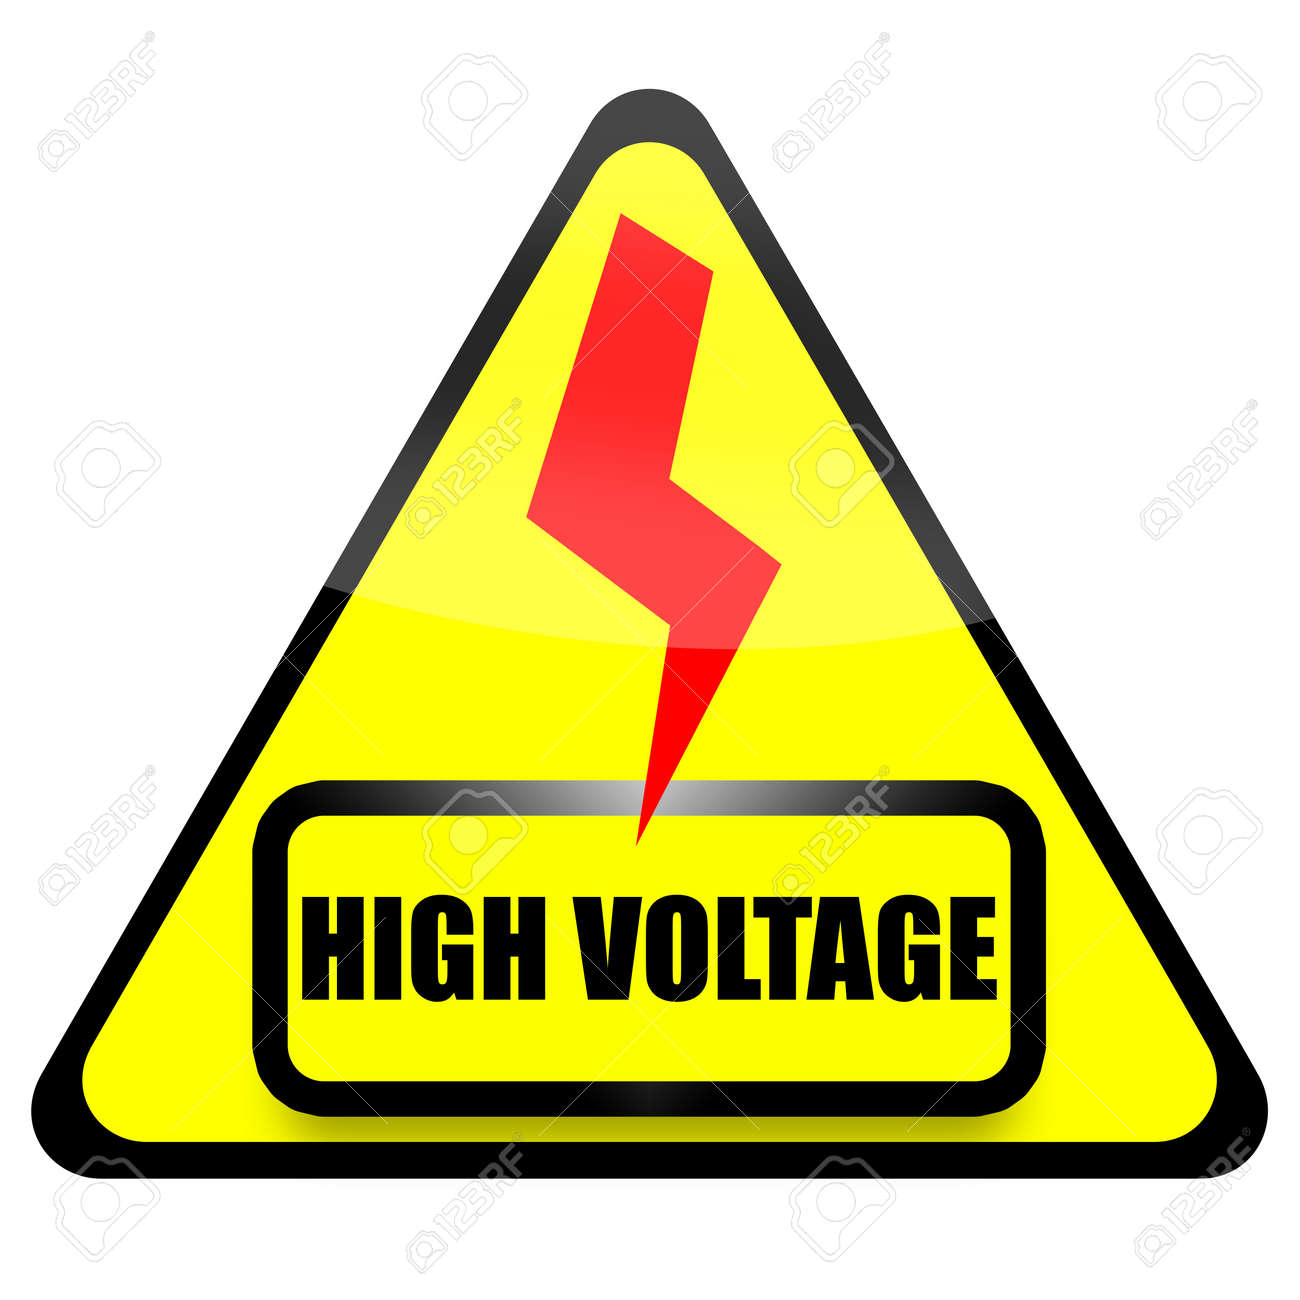 High Voltage sign with red thunder isolated on white background Stock Photo - 11135588